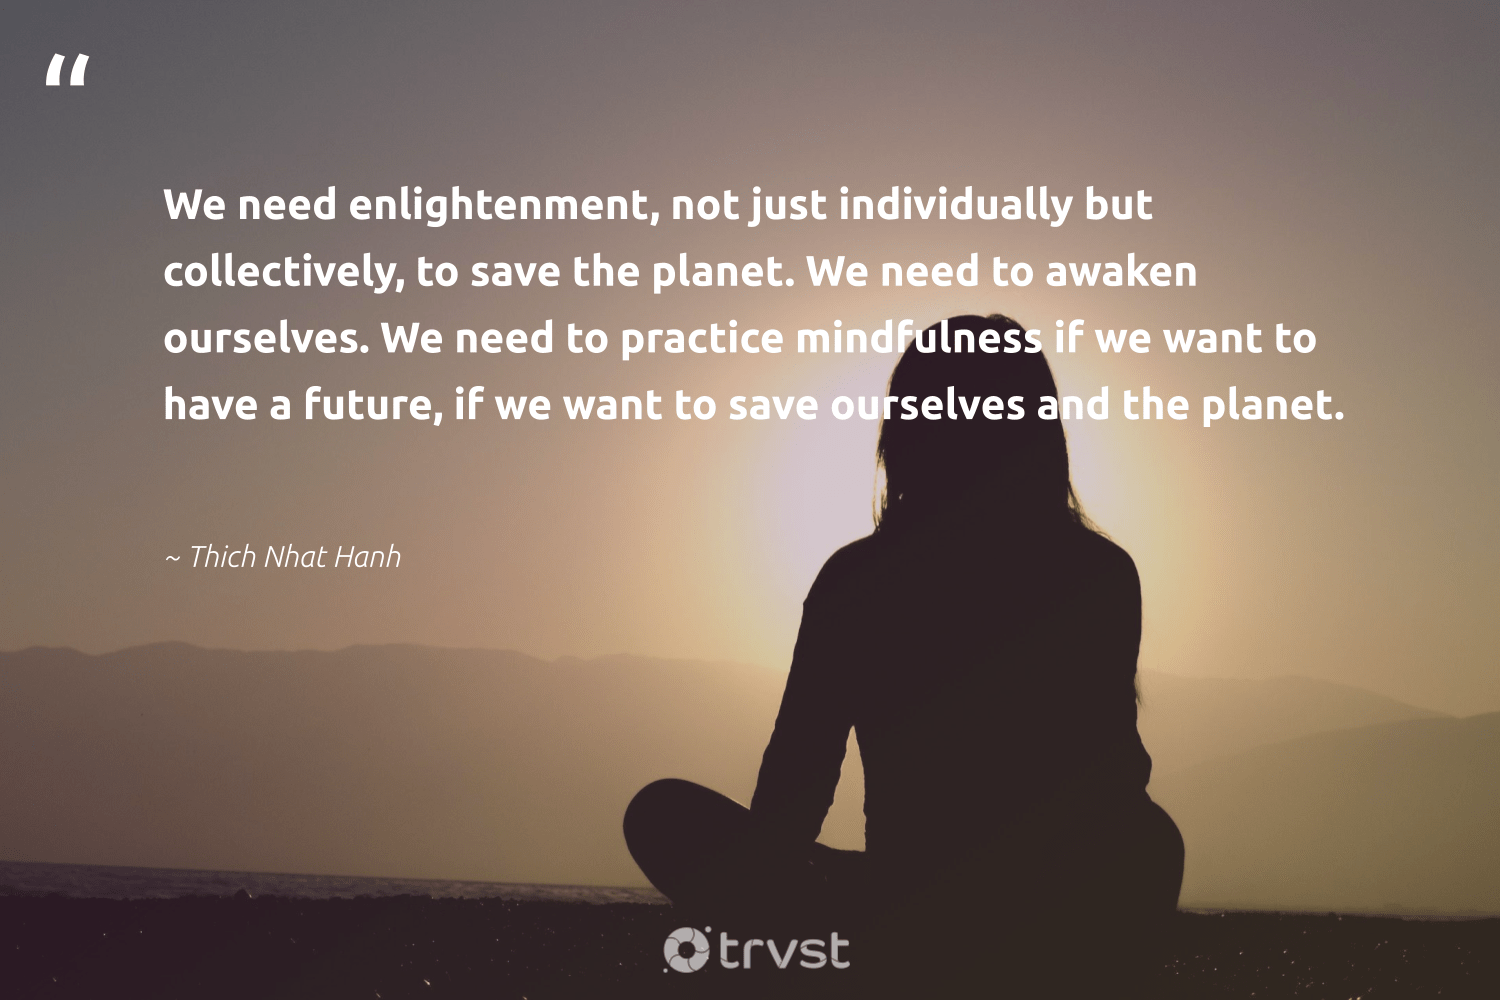 """""""We need enlightenment, not just individually but collectively, to save the planet. We need to awaken ourselves. We need to practice mindfulness if we want to have a future, if we want to save ourselves and the planet.""""  - Thich Nhat Hanh #trvst #quotes #savetheplanet #planet #mindfulness #nature #wellness #green #dosomething #earth #happiness #environmentallyfriendly"""